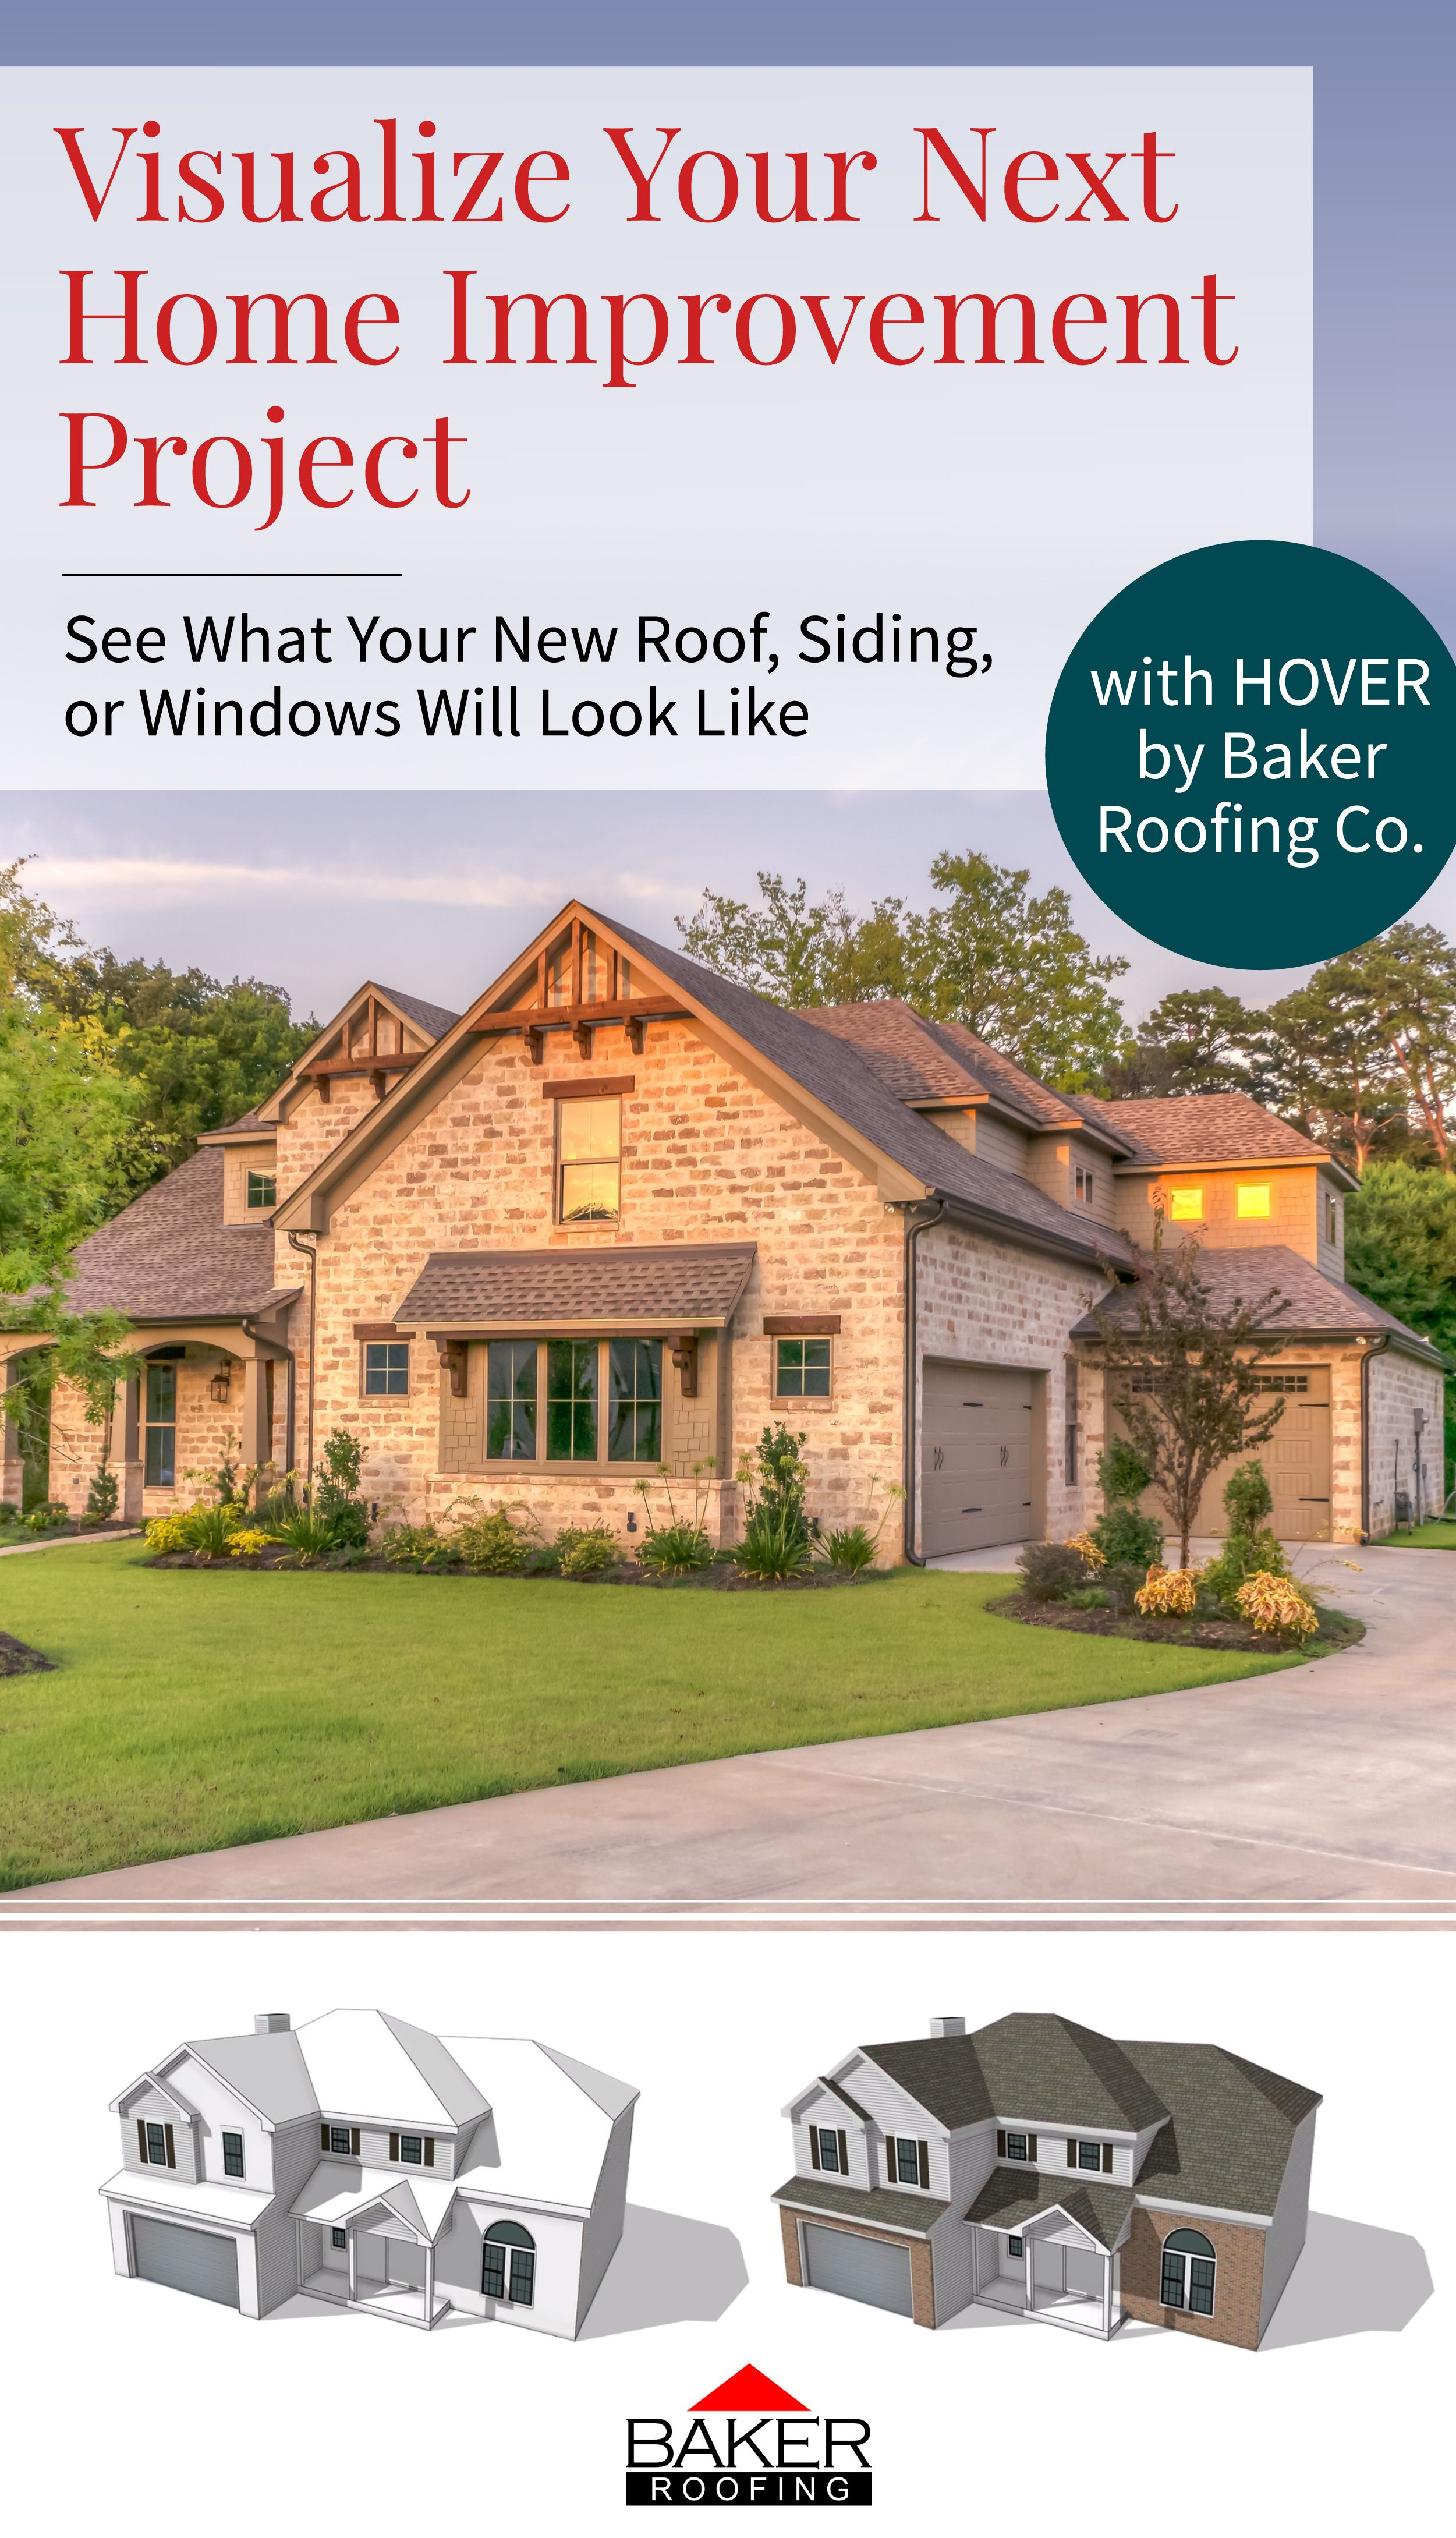 Best Hover Make Visual Changes To Your Roof Siging And Windows 640 x 480